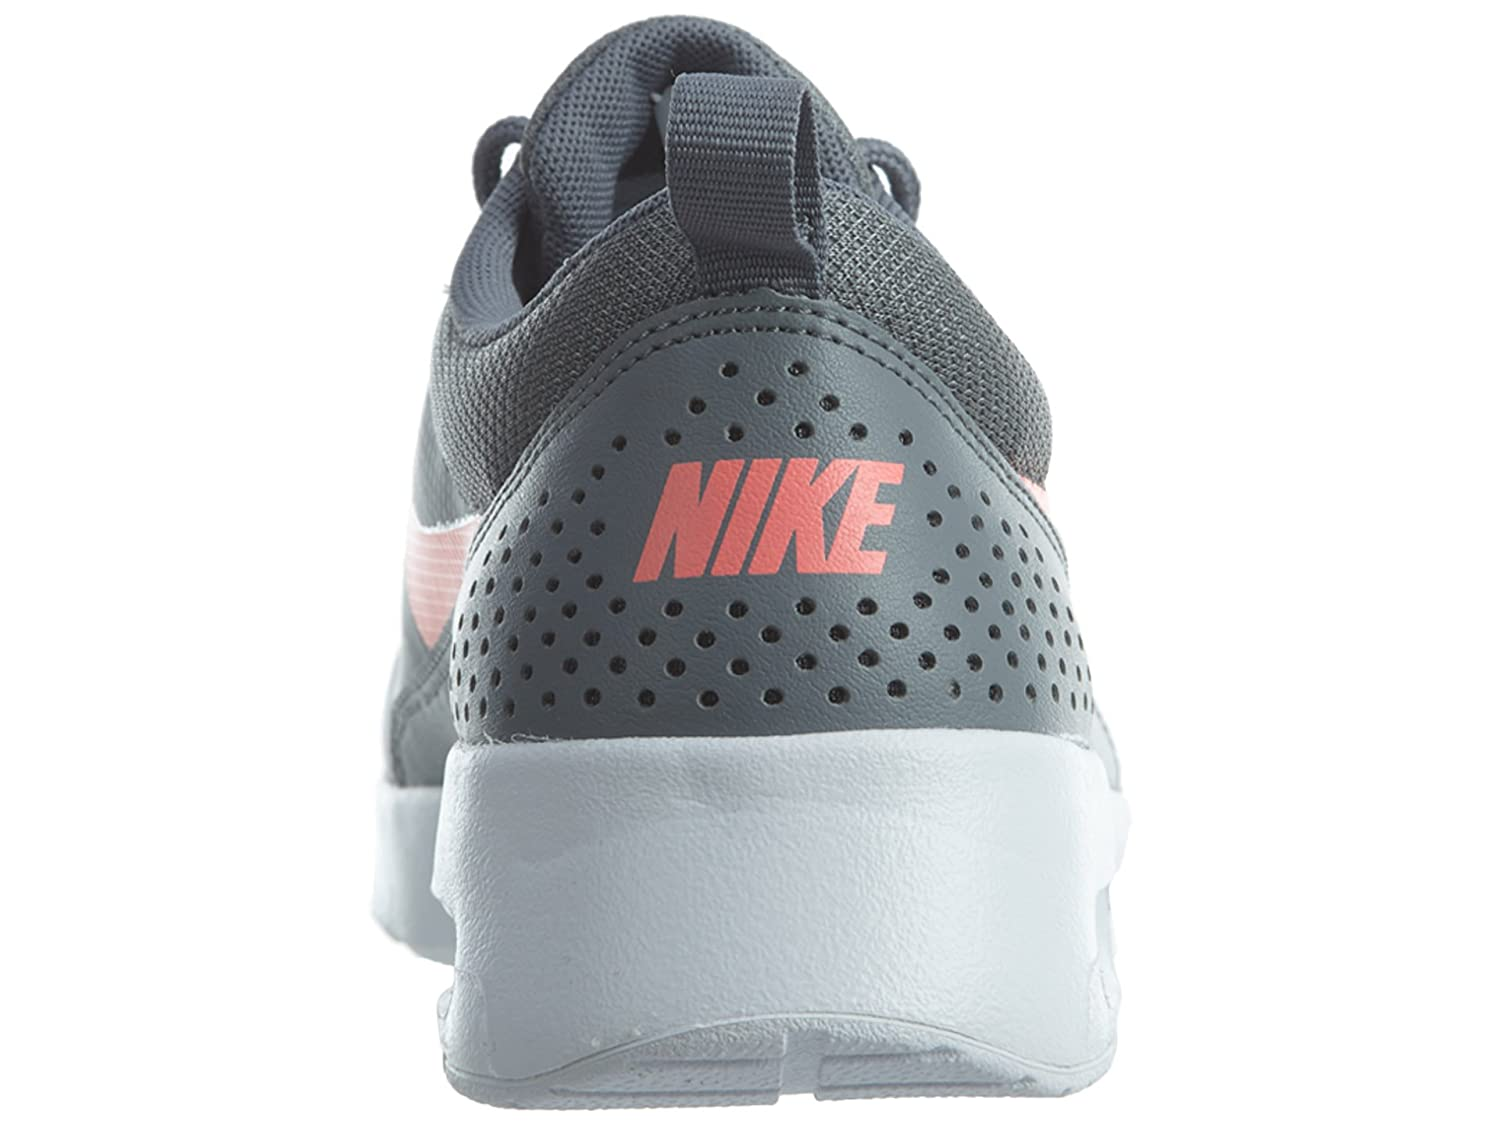 info for 3a89a b35fa NIKE Unisex Kids Air Max Thea Gs 814444-007 Trainers Amazon.co.uk Shoes   Bags